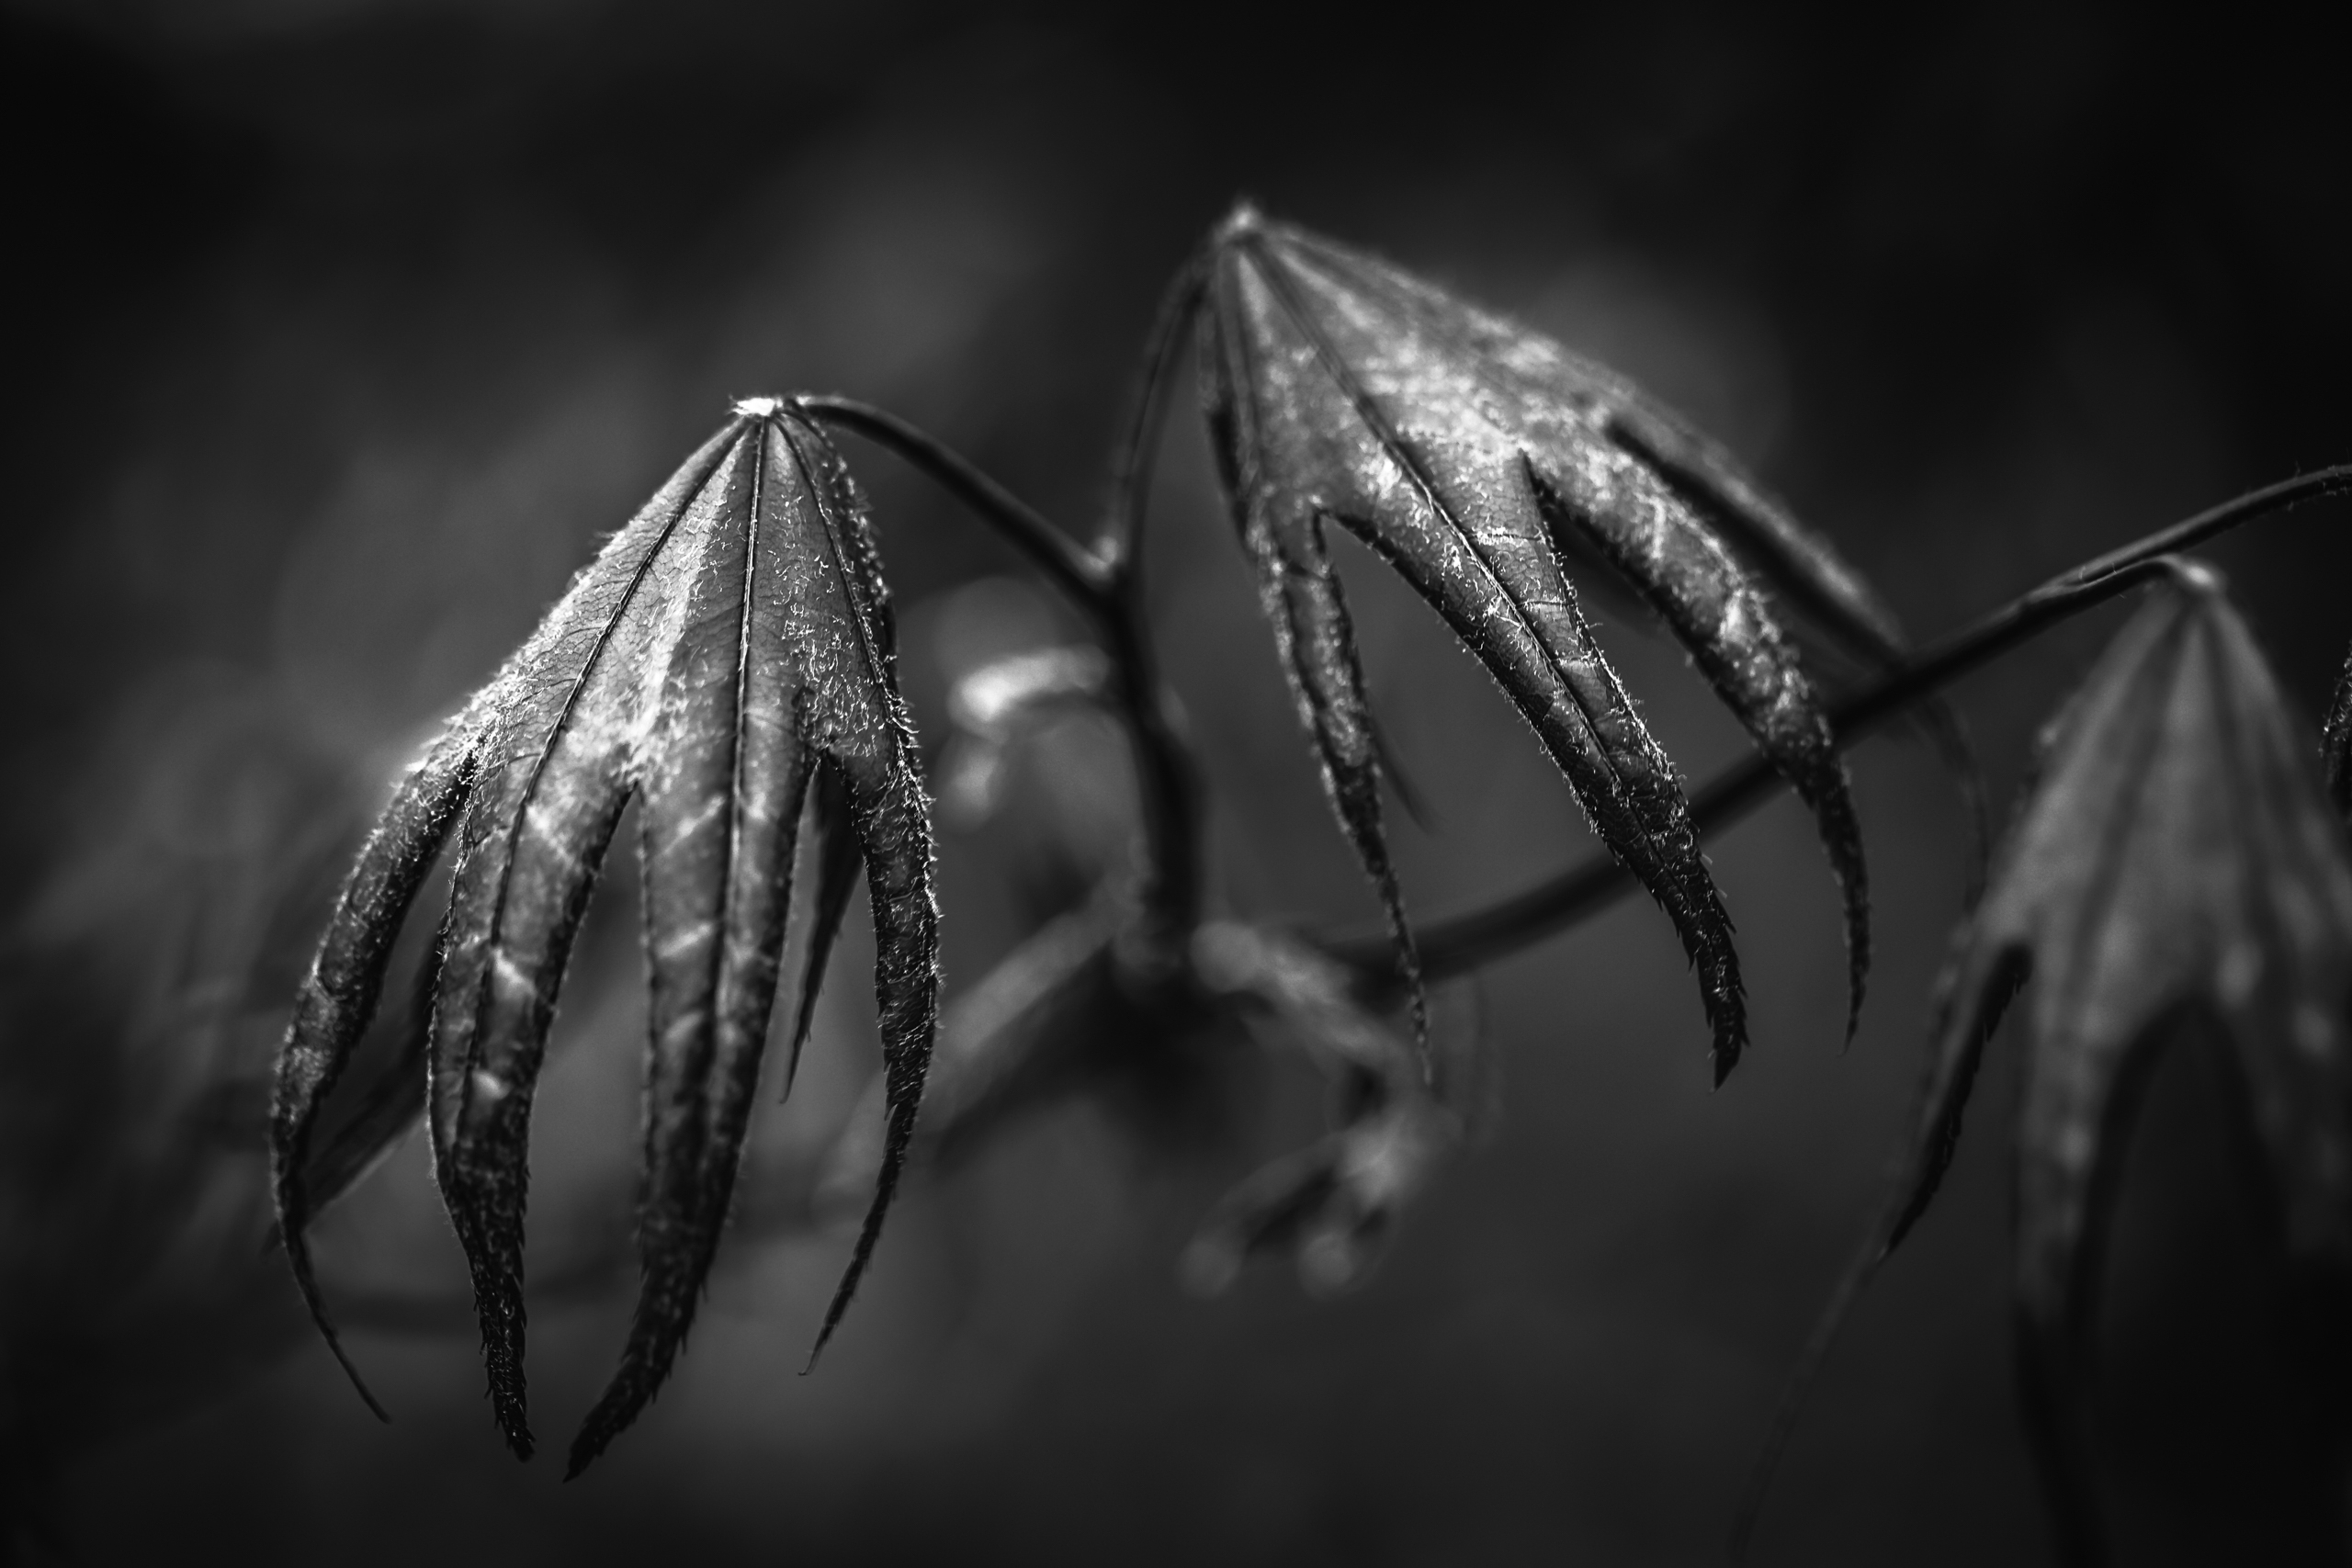 Black and white abstract macro photograph of a japanese maple that looks like a flying dragon